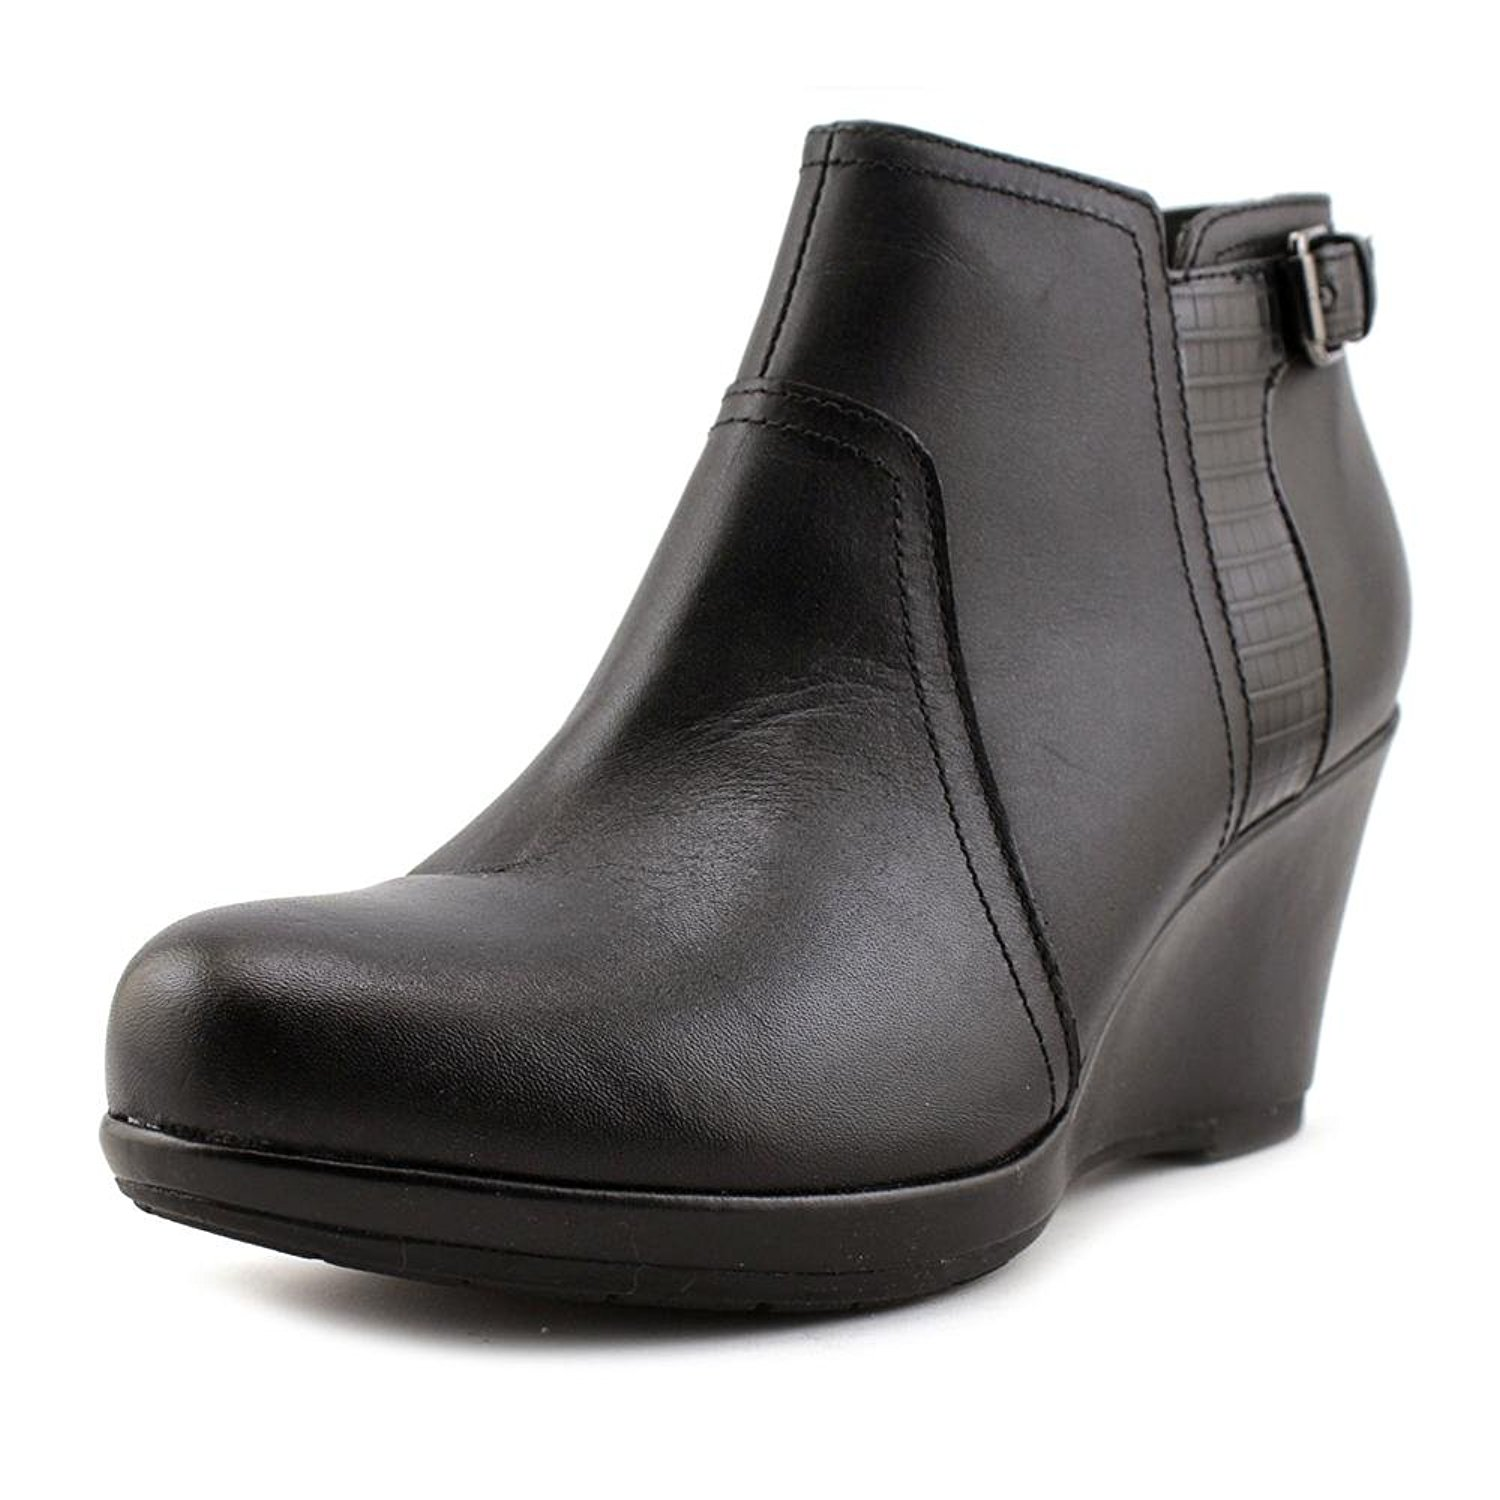 Womens Camryn Rose Closed Toe Ankle Fashion Boots